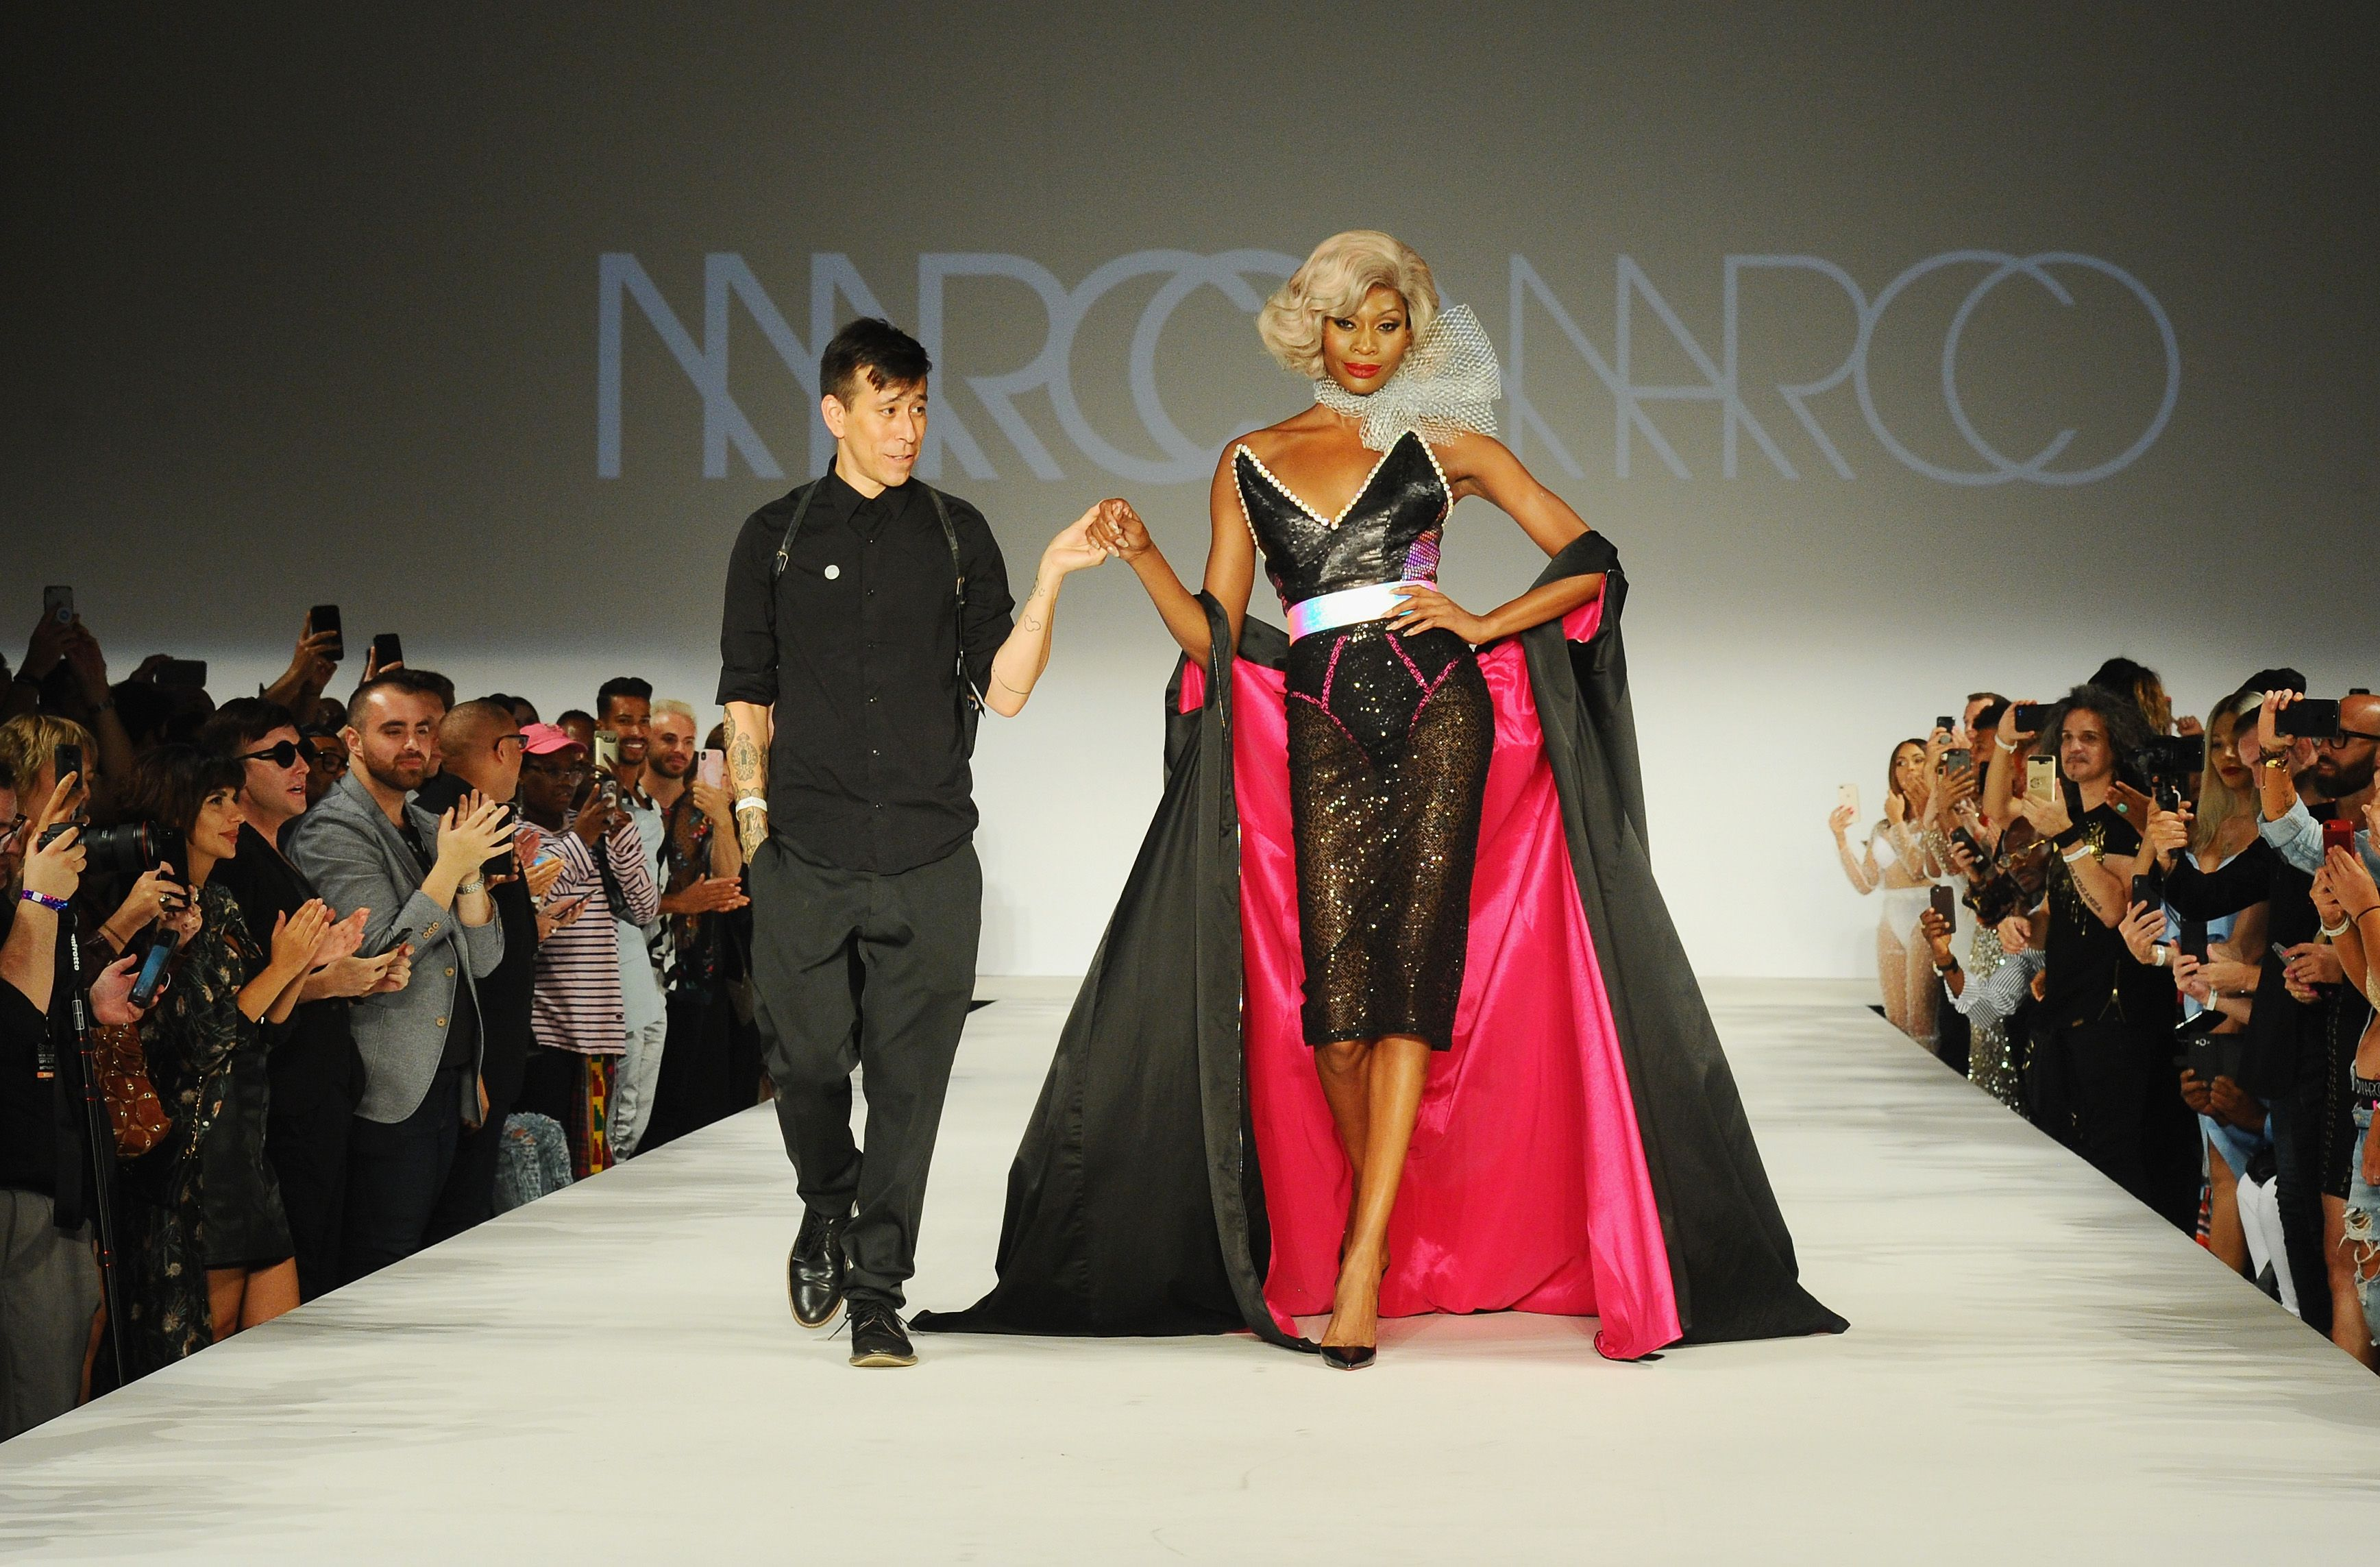 The Marco Marco Runway Show Featured All Trans Models d3dacec5e263